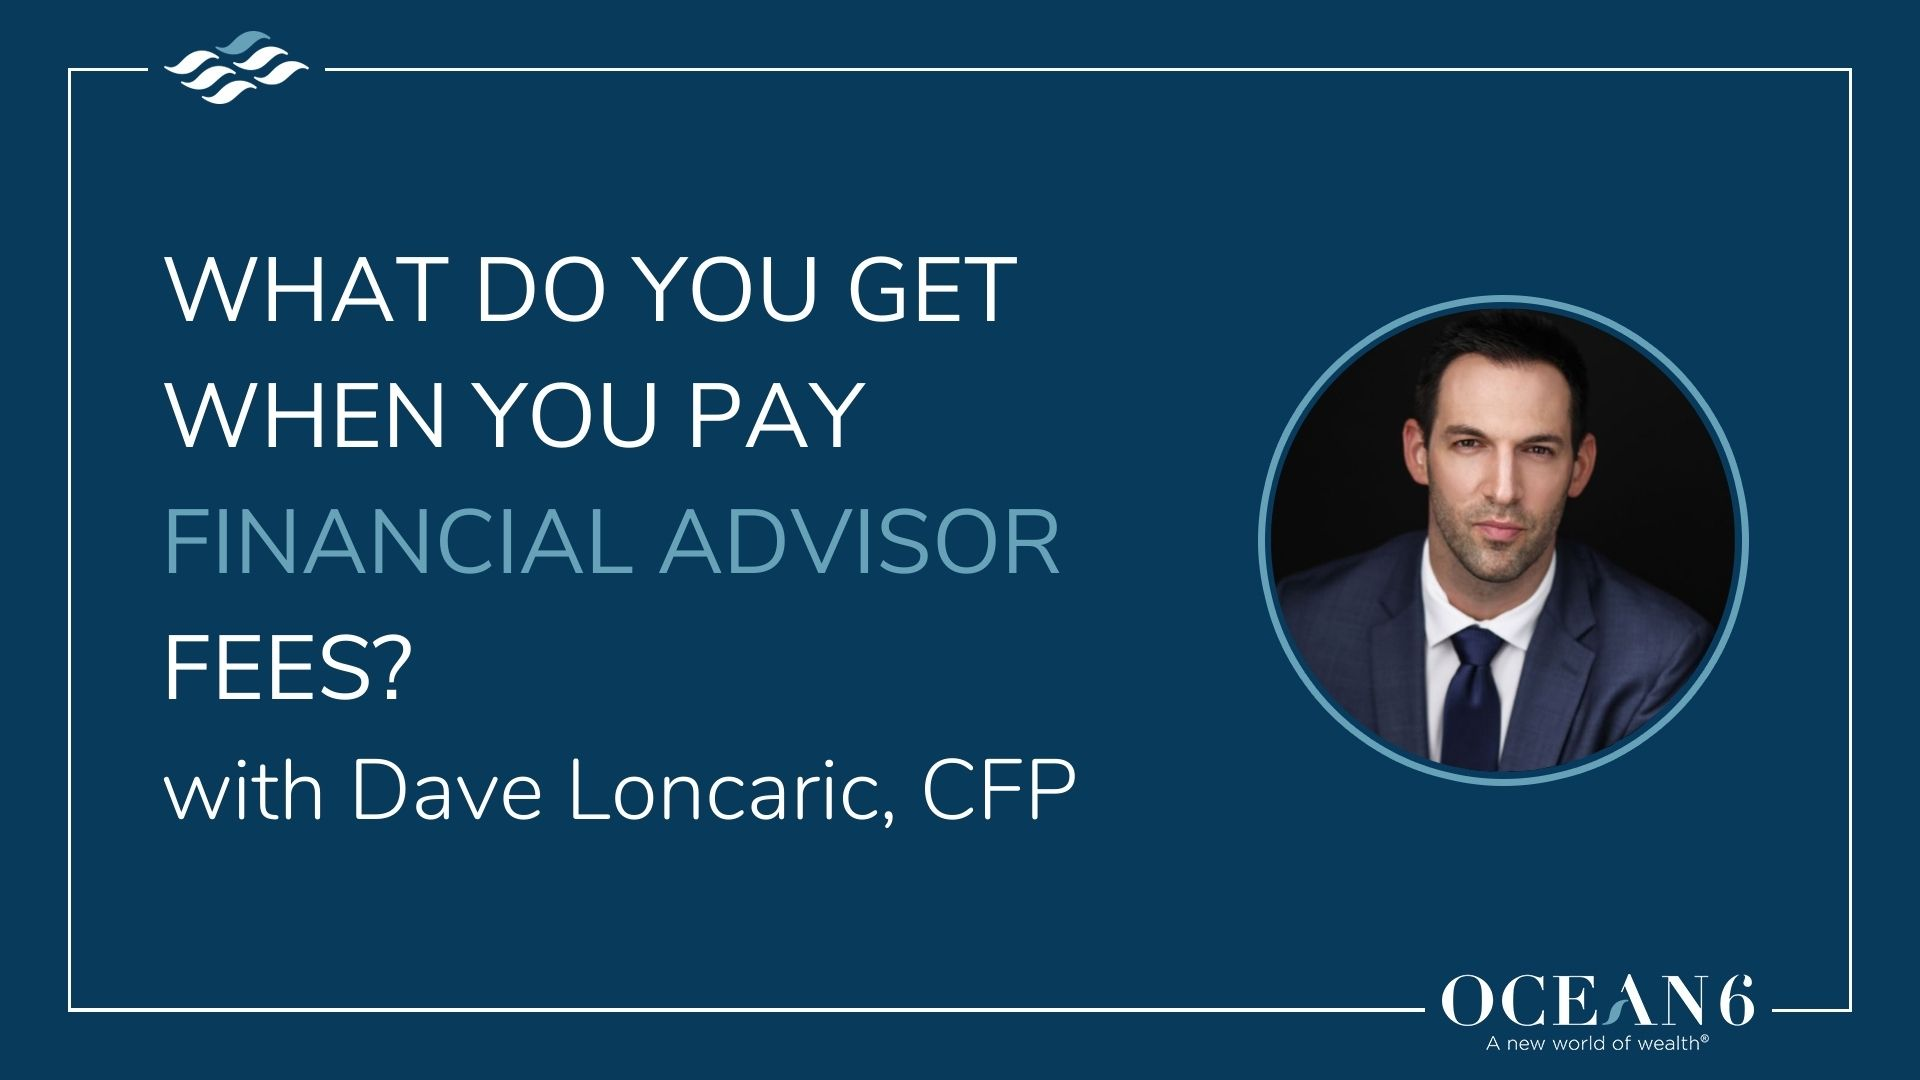 What Do You Get When You Pay Financial Advisor Fees?